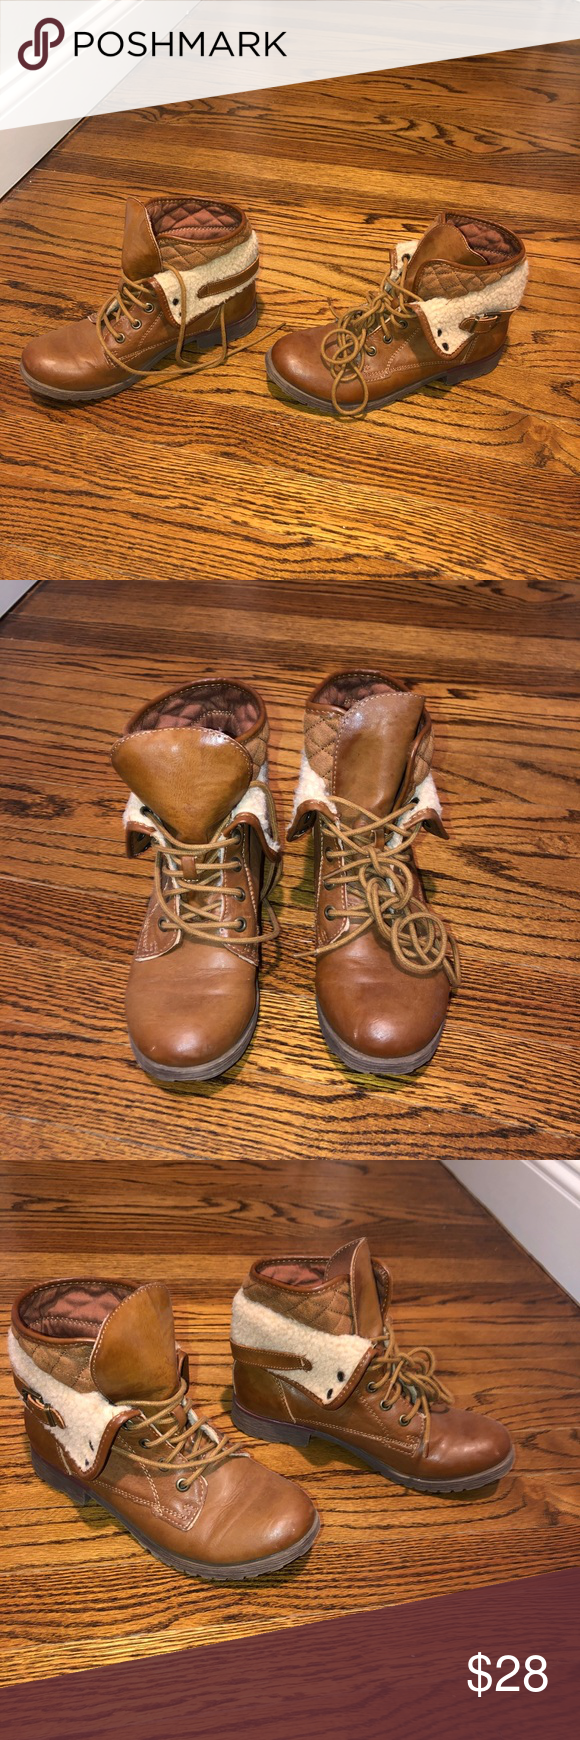 Booties!!! Cute booties from Macy's!  Women's size 6!  Barely worn! Great condition! Rock & Candy Shoes Ankle Boots & Booties #myposhpicks